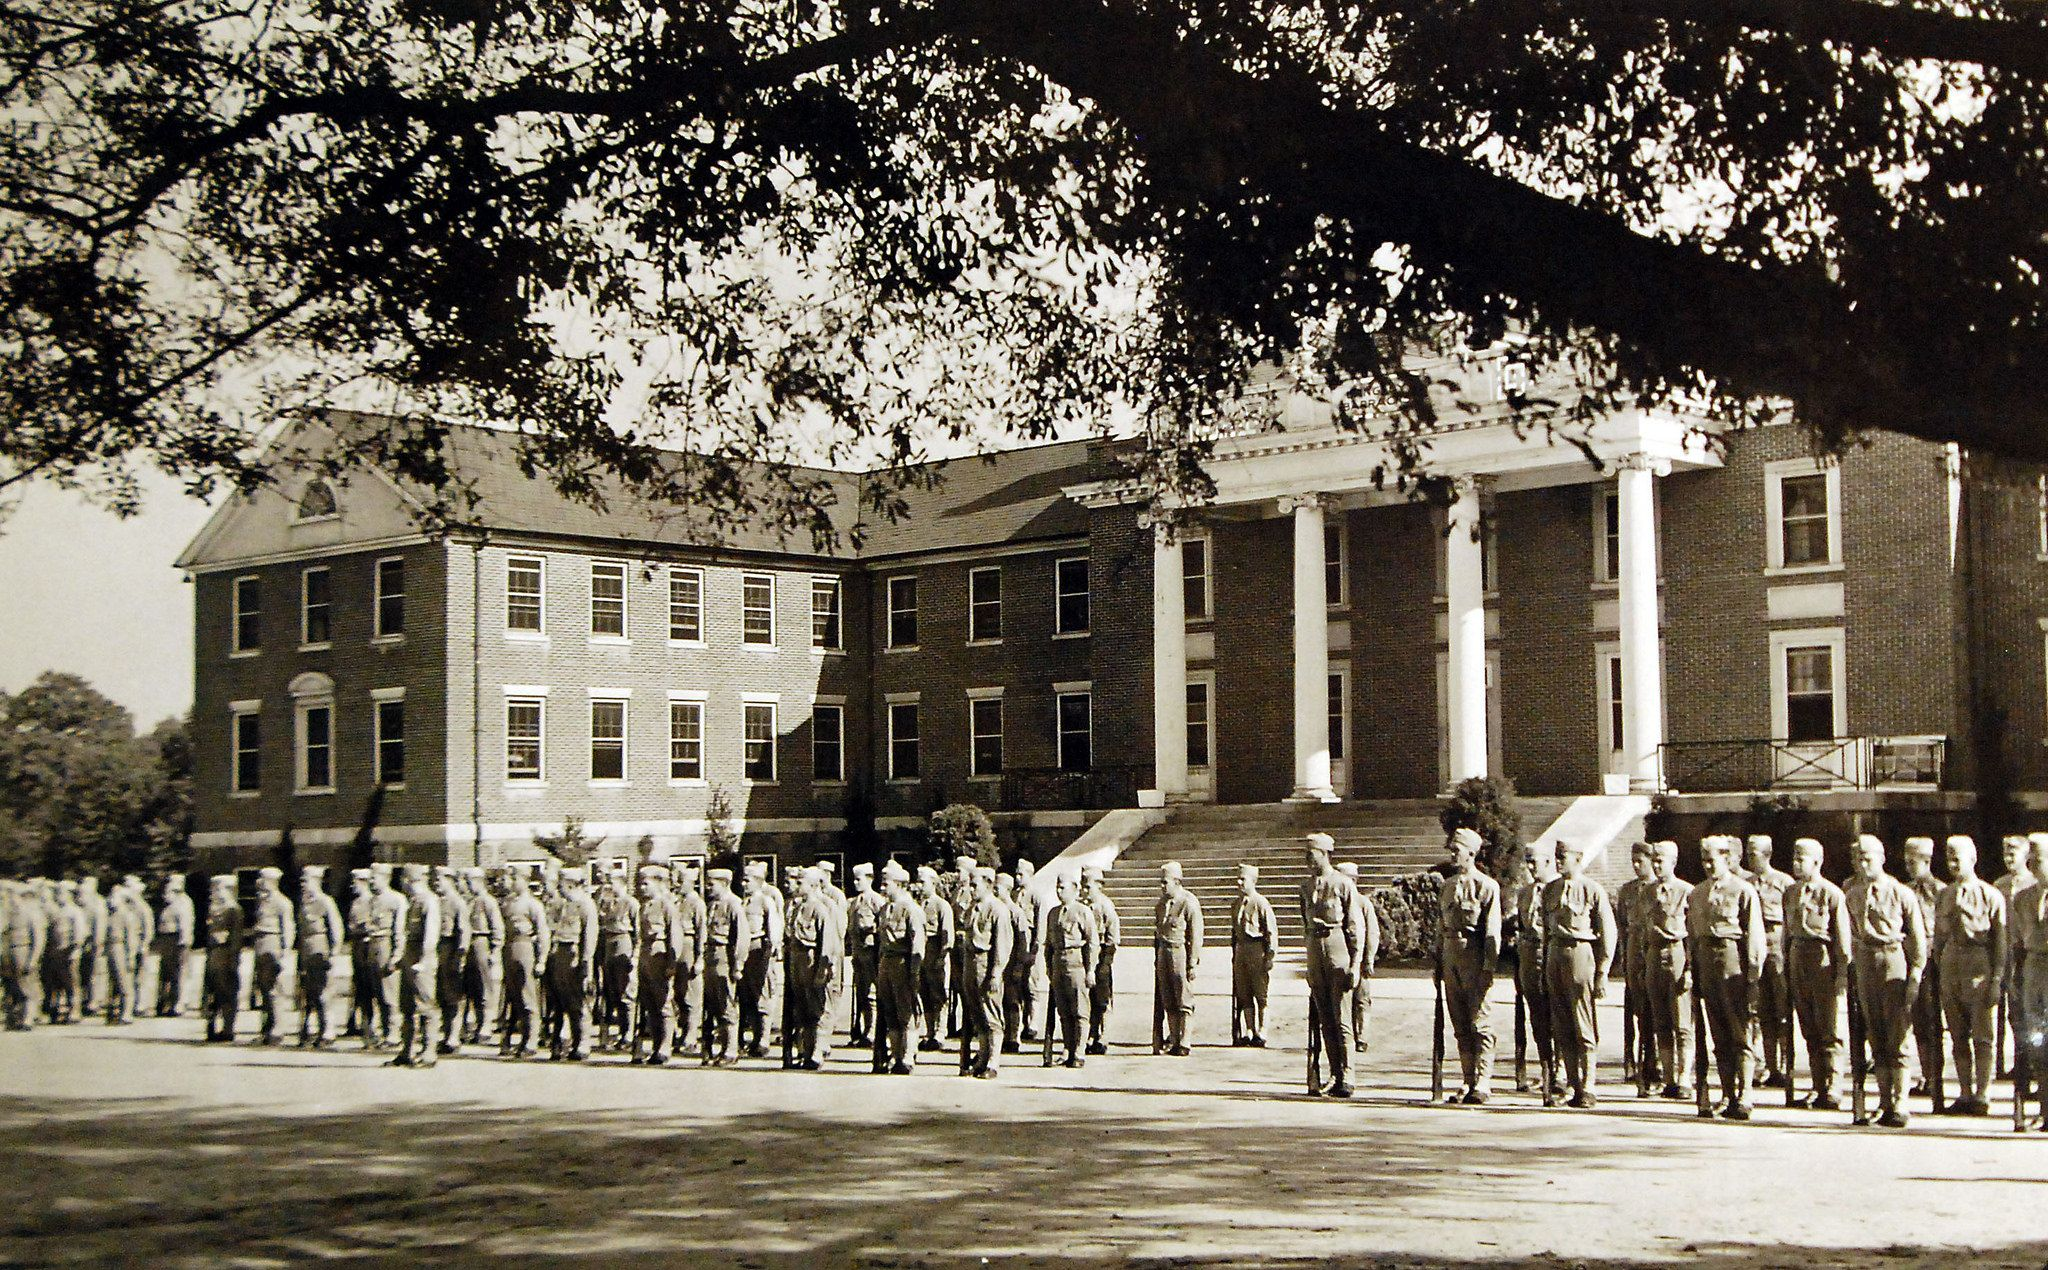 Lot-9993-7:  U.S. Navy Pre-Flight School, Athens, Georgia, July 1943.  Good military bearing is expected of all aviation trainees at the school.  Shown is a battalion formation in front of Langley Barracks.  U.S. Navy Photograph.  Courtesy of the Library of Congress.  (2016/05/19).